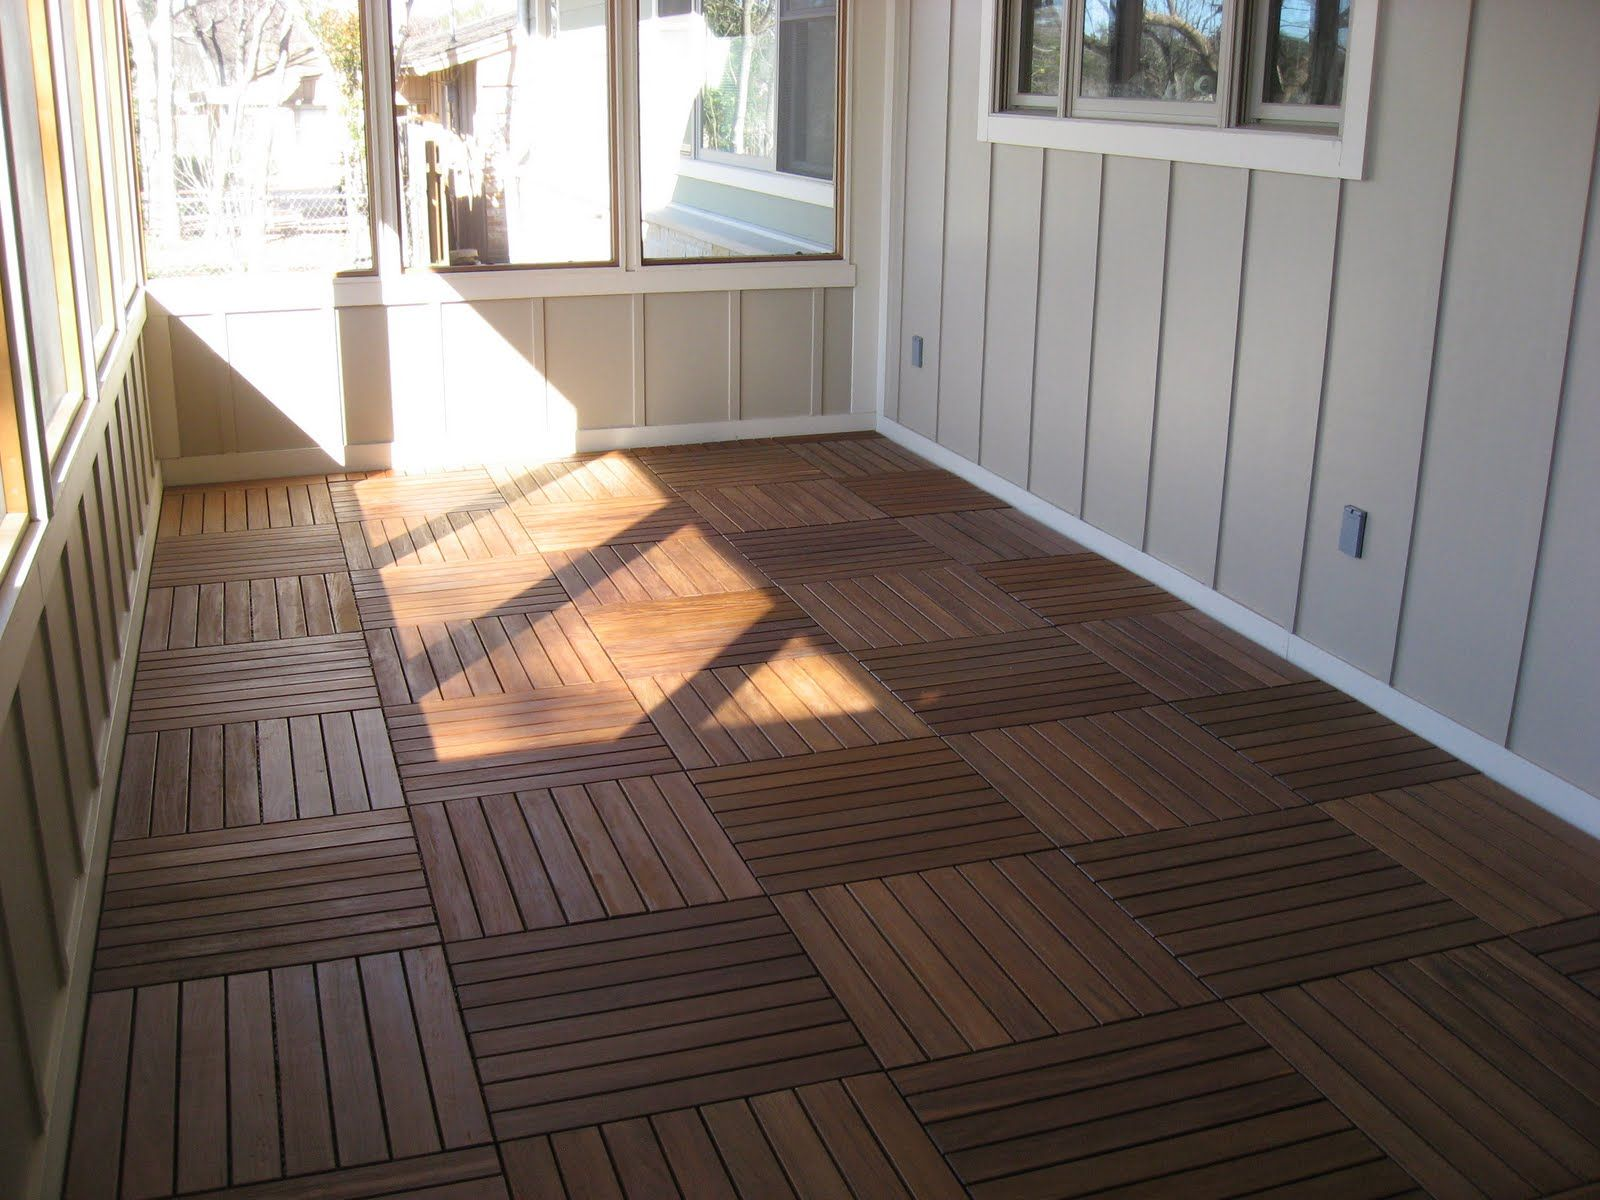 screen porch flooring ideas Just for a minute, though